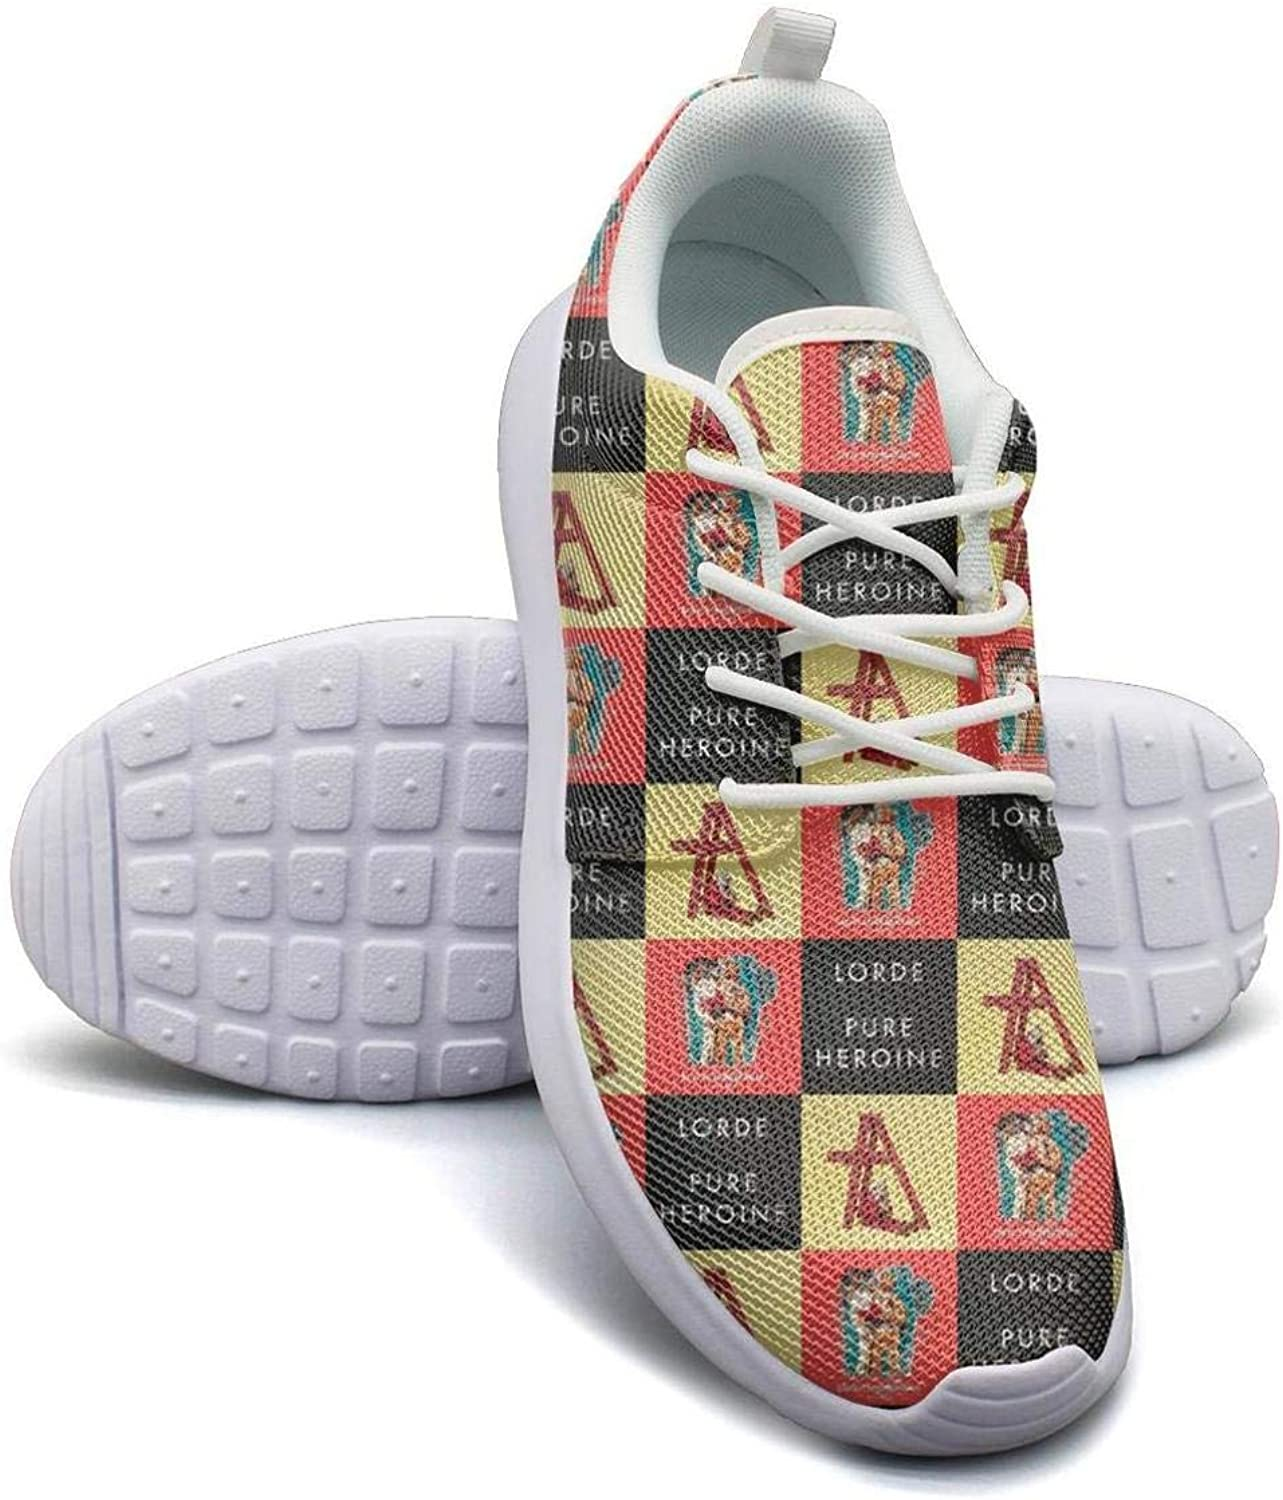 Casual shoes for Womens Lightweight Billie-Eilish-lorde- Best Running shoes